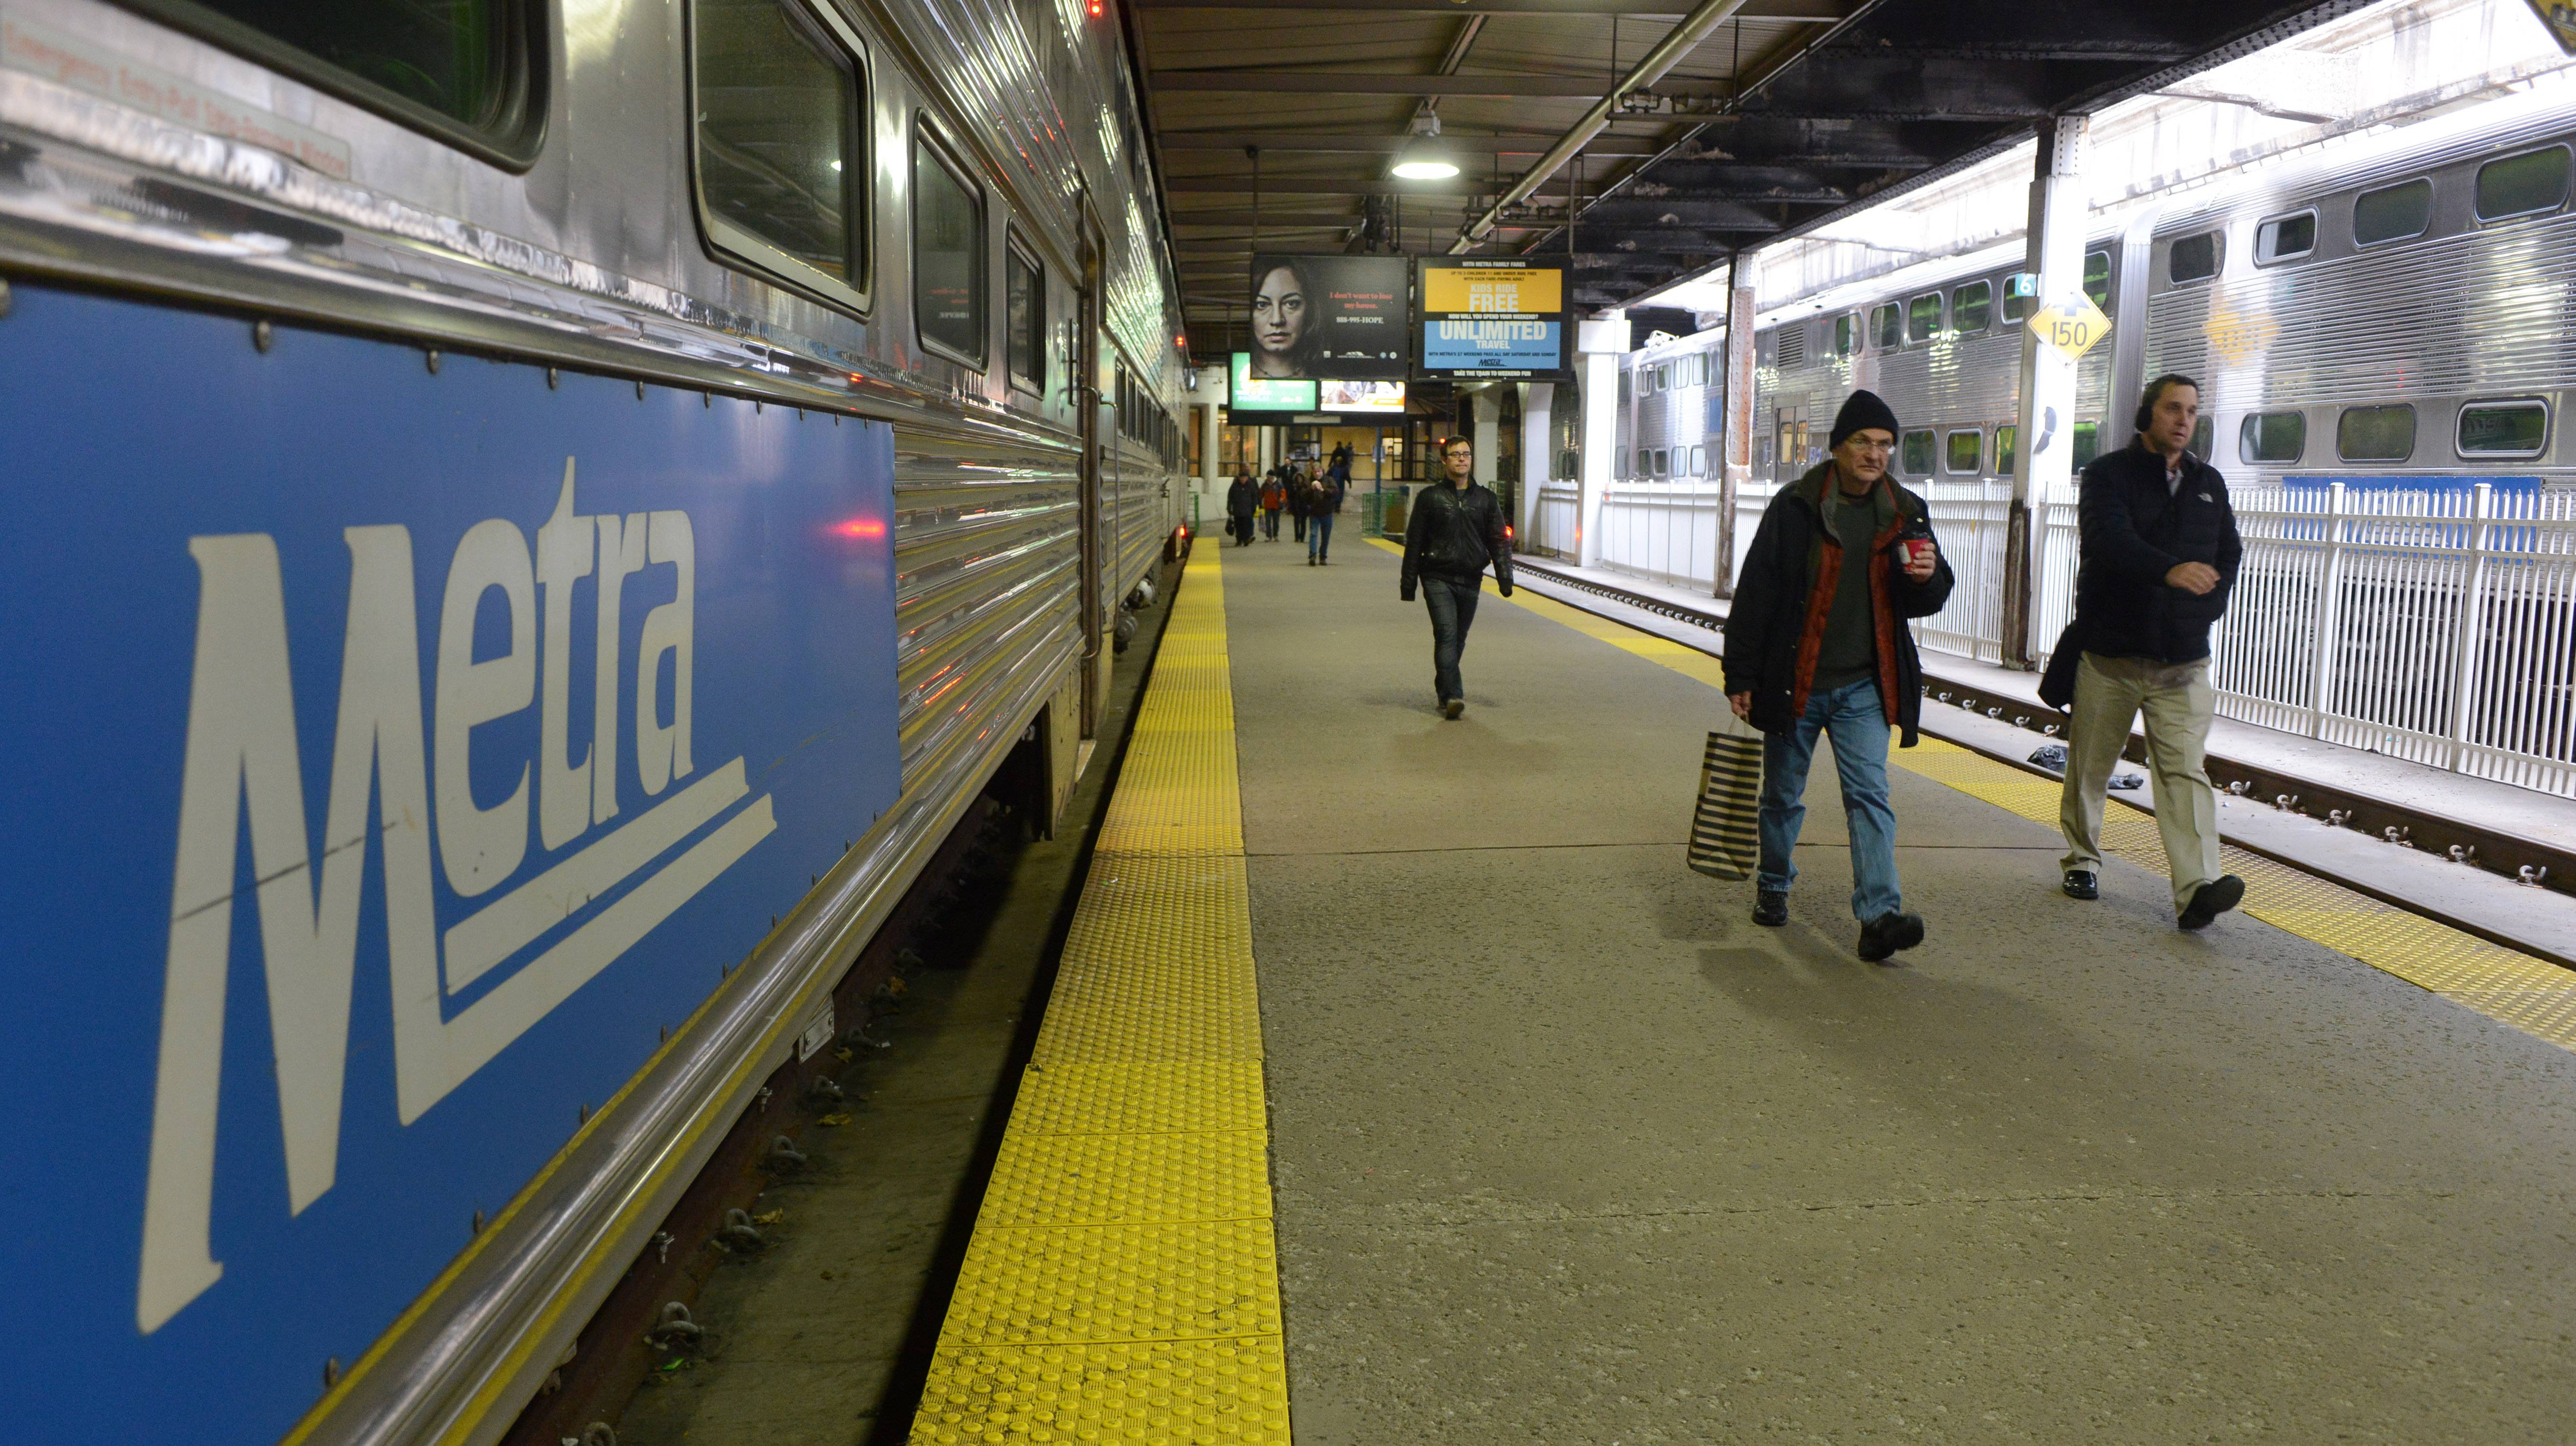 Transit could lose millions under Rauner budget